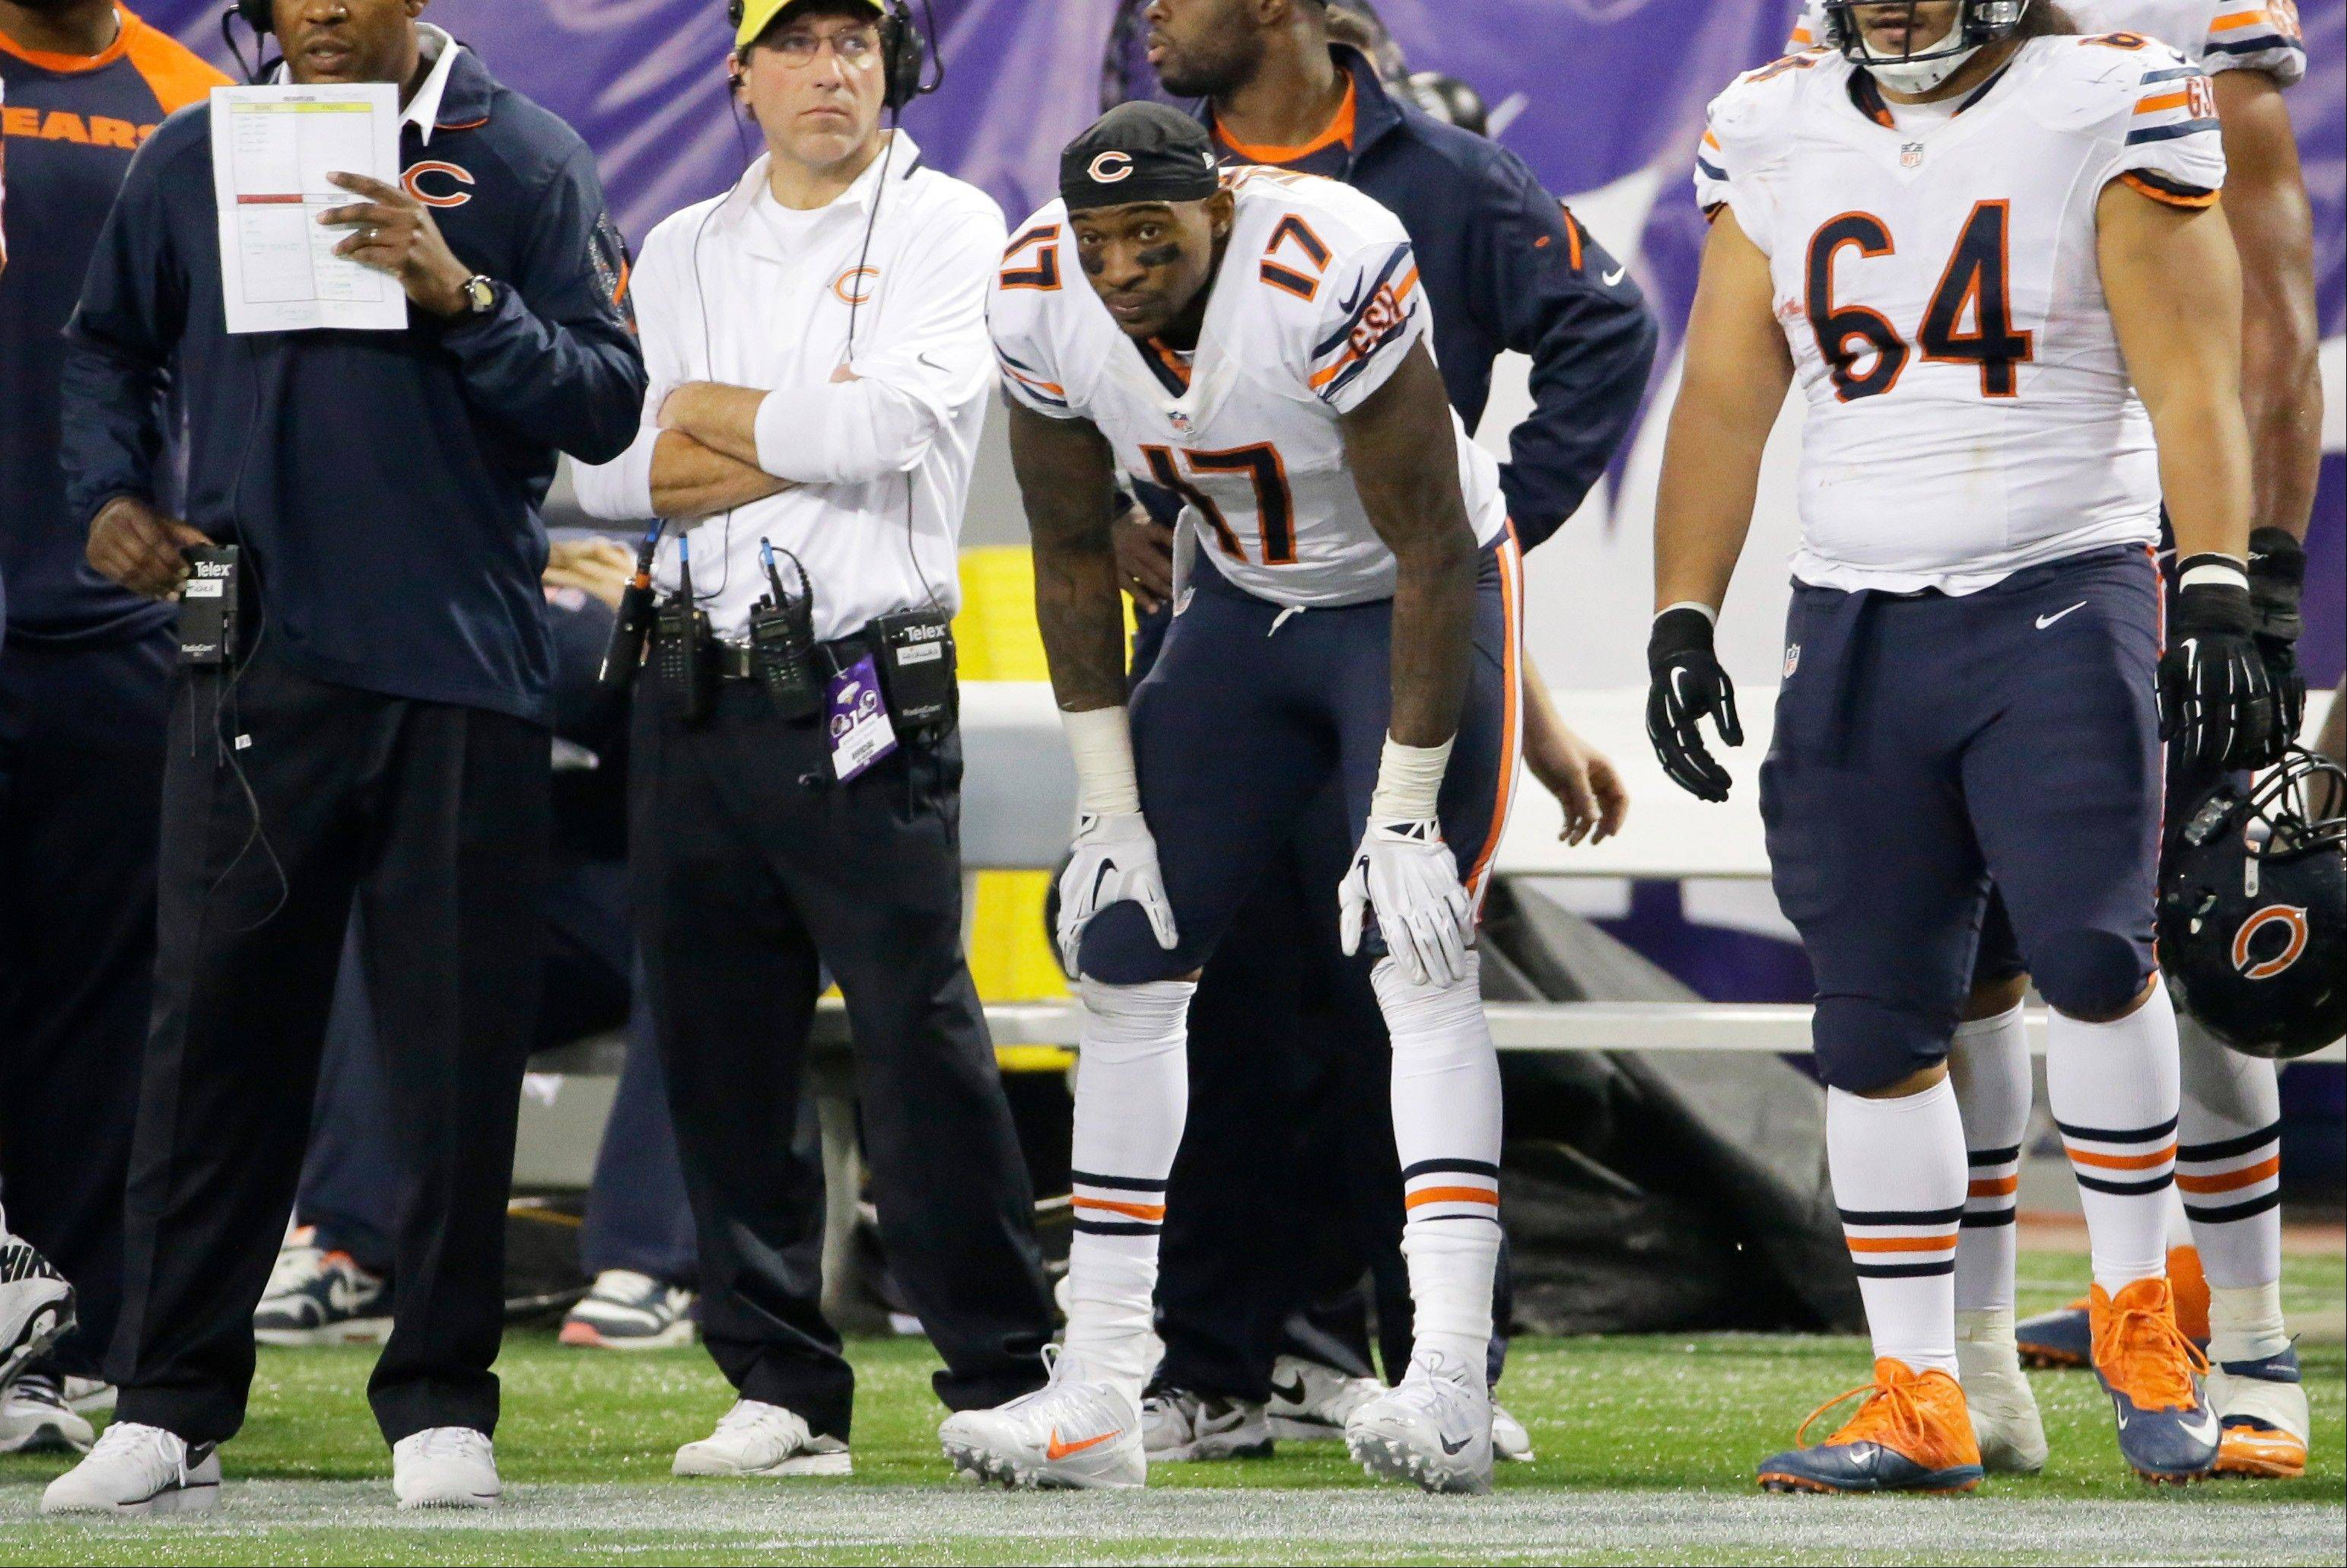 Wide receiver Alshon Jeffery, after almost single-handedly lifting the Bears to victory with a pair of highlight-reel touchdown catches, can do little but look on from the sideline during Sunday's overtime.